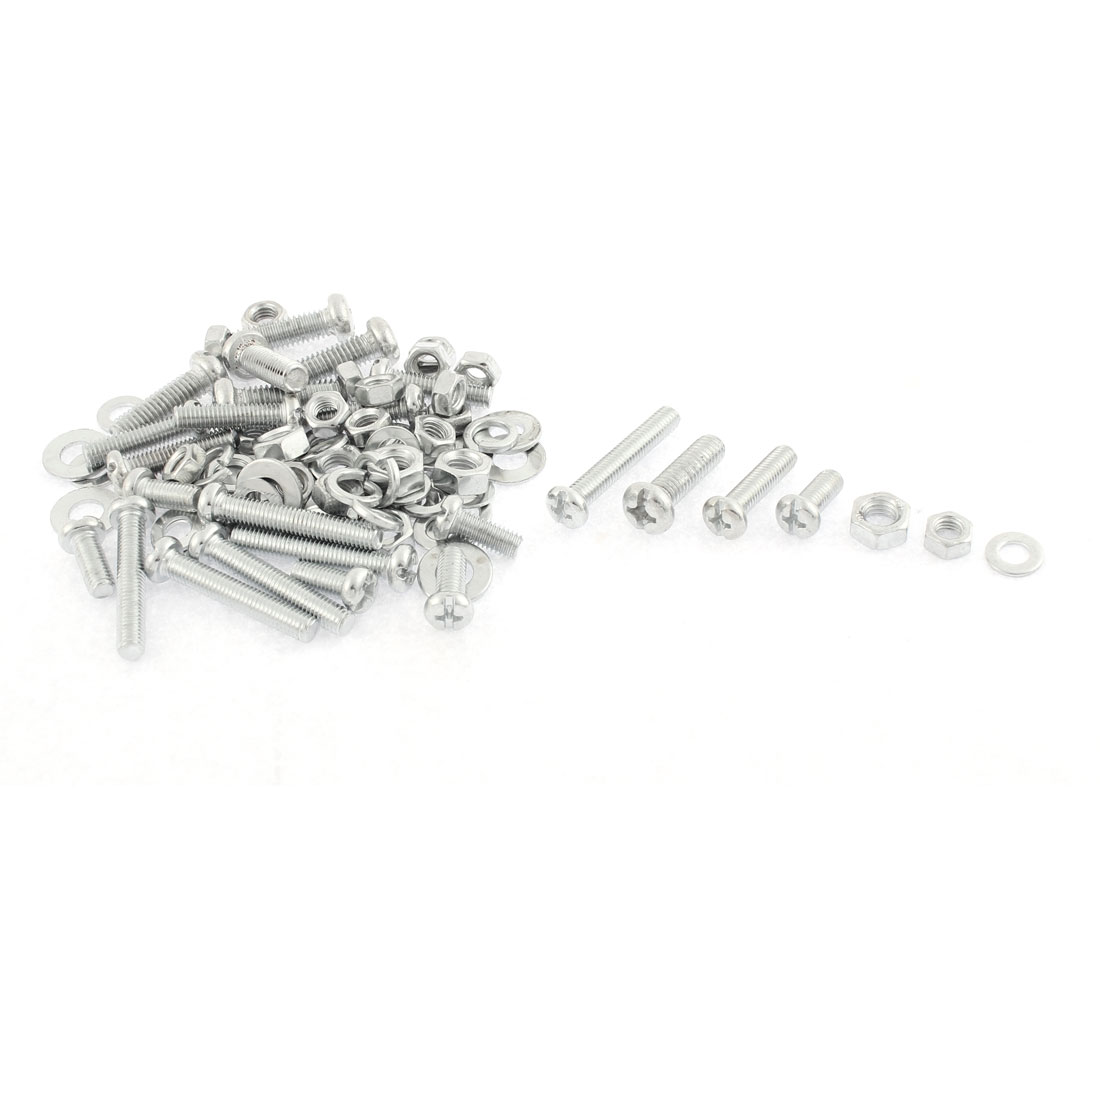 Stainless Steel Phillips Pan Head Screw Nut Washers Set Assortment Kit